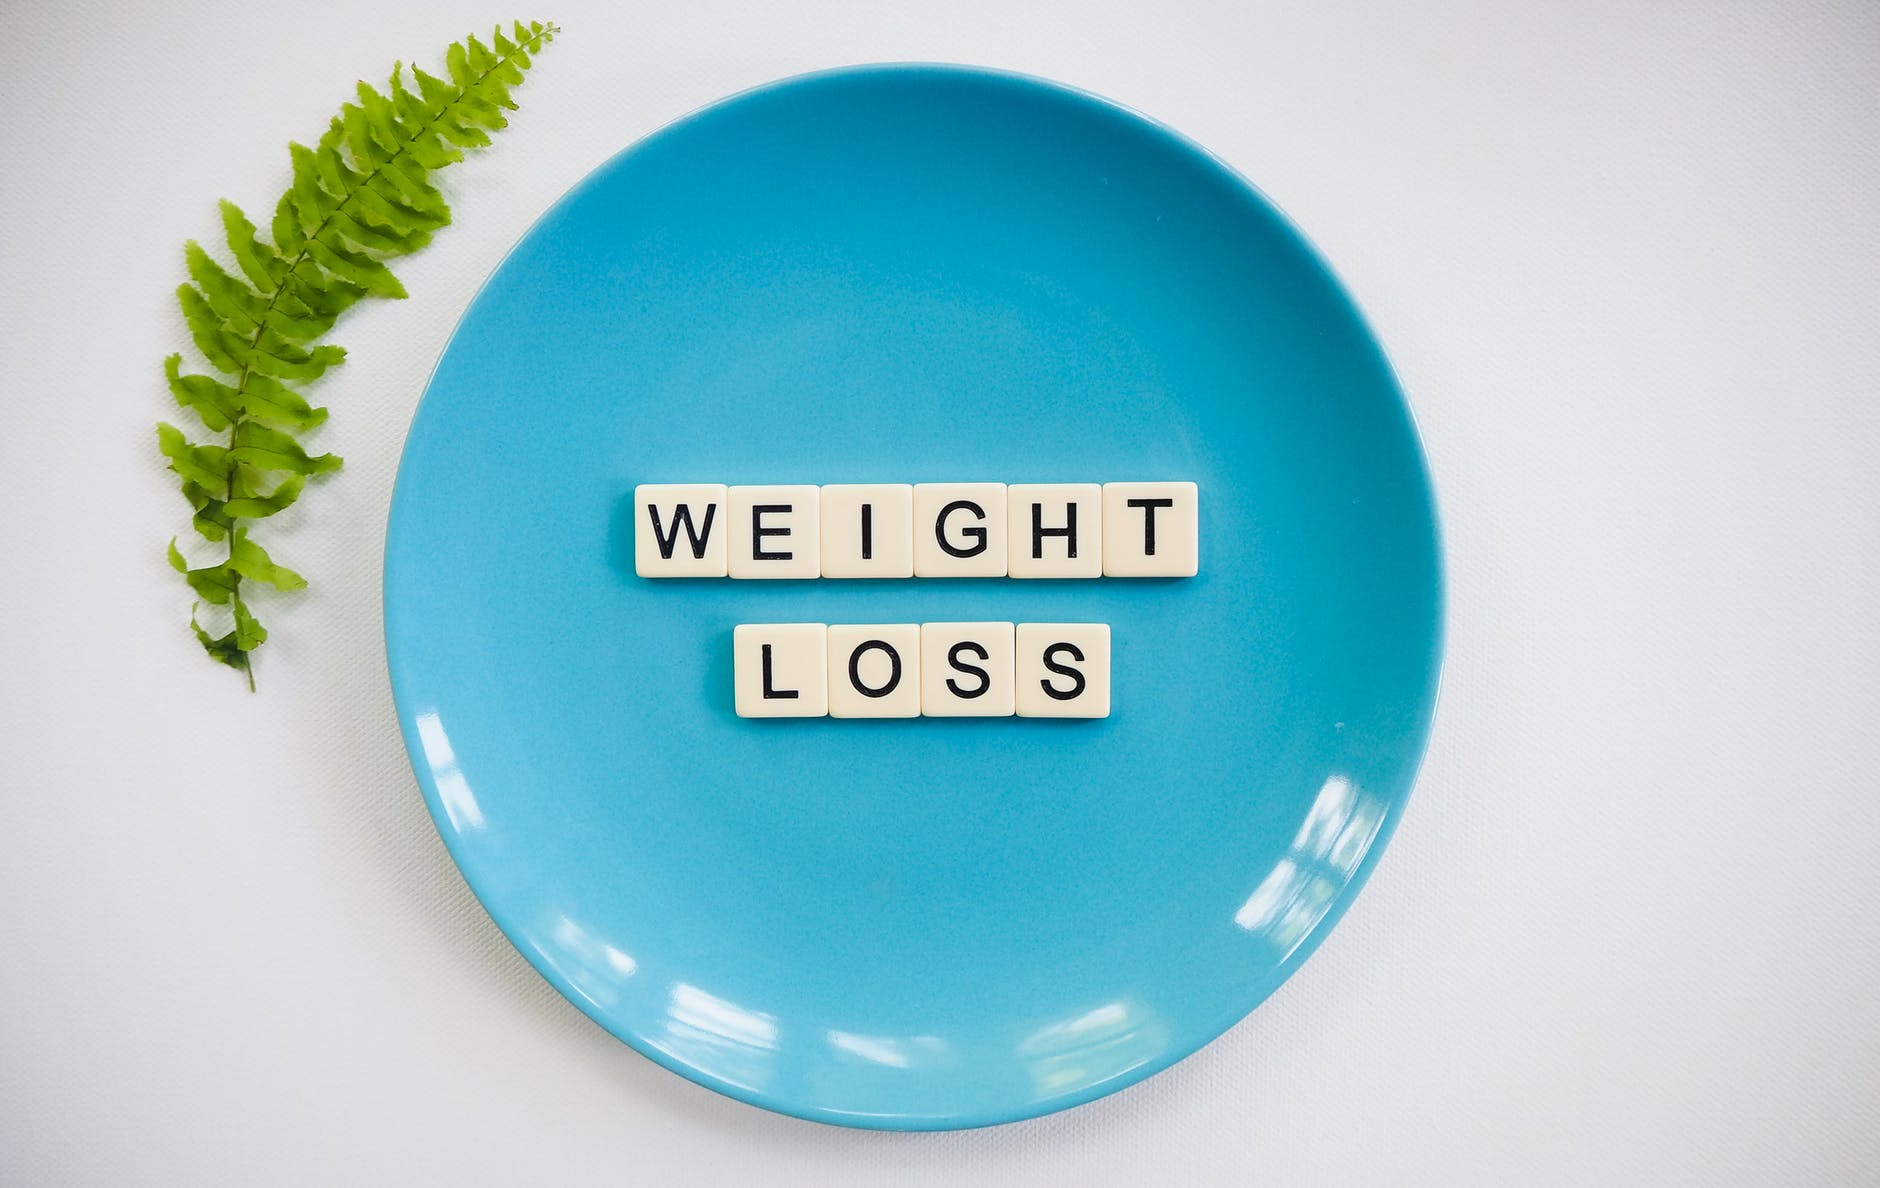 weight loss words on plate